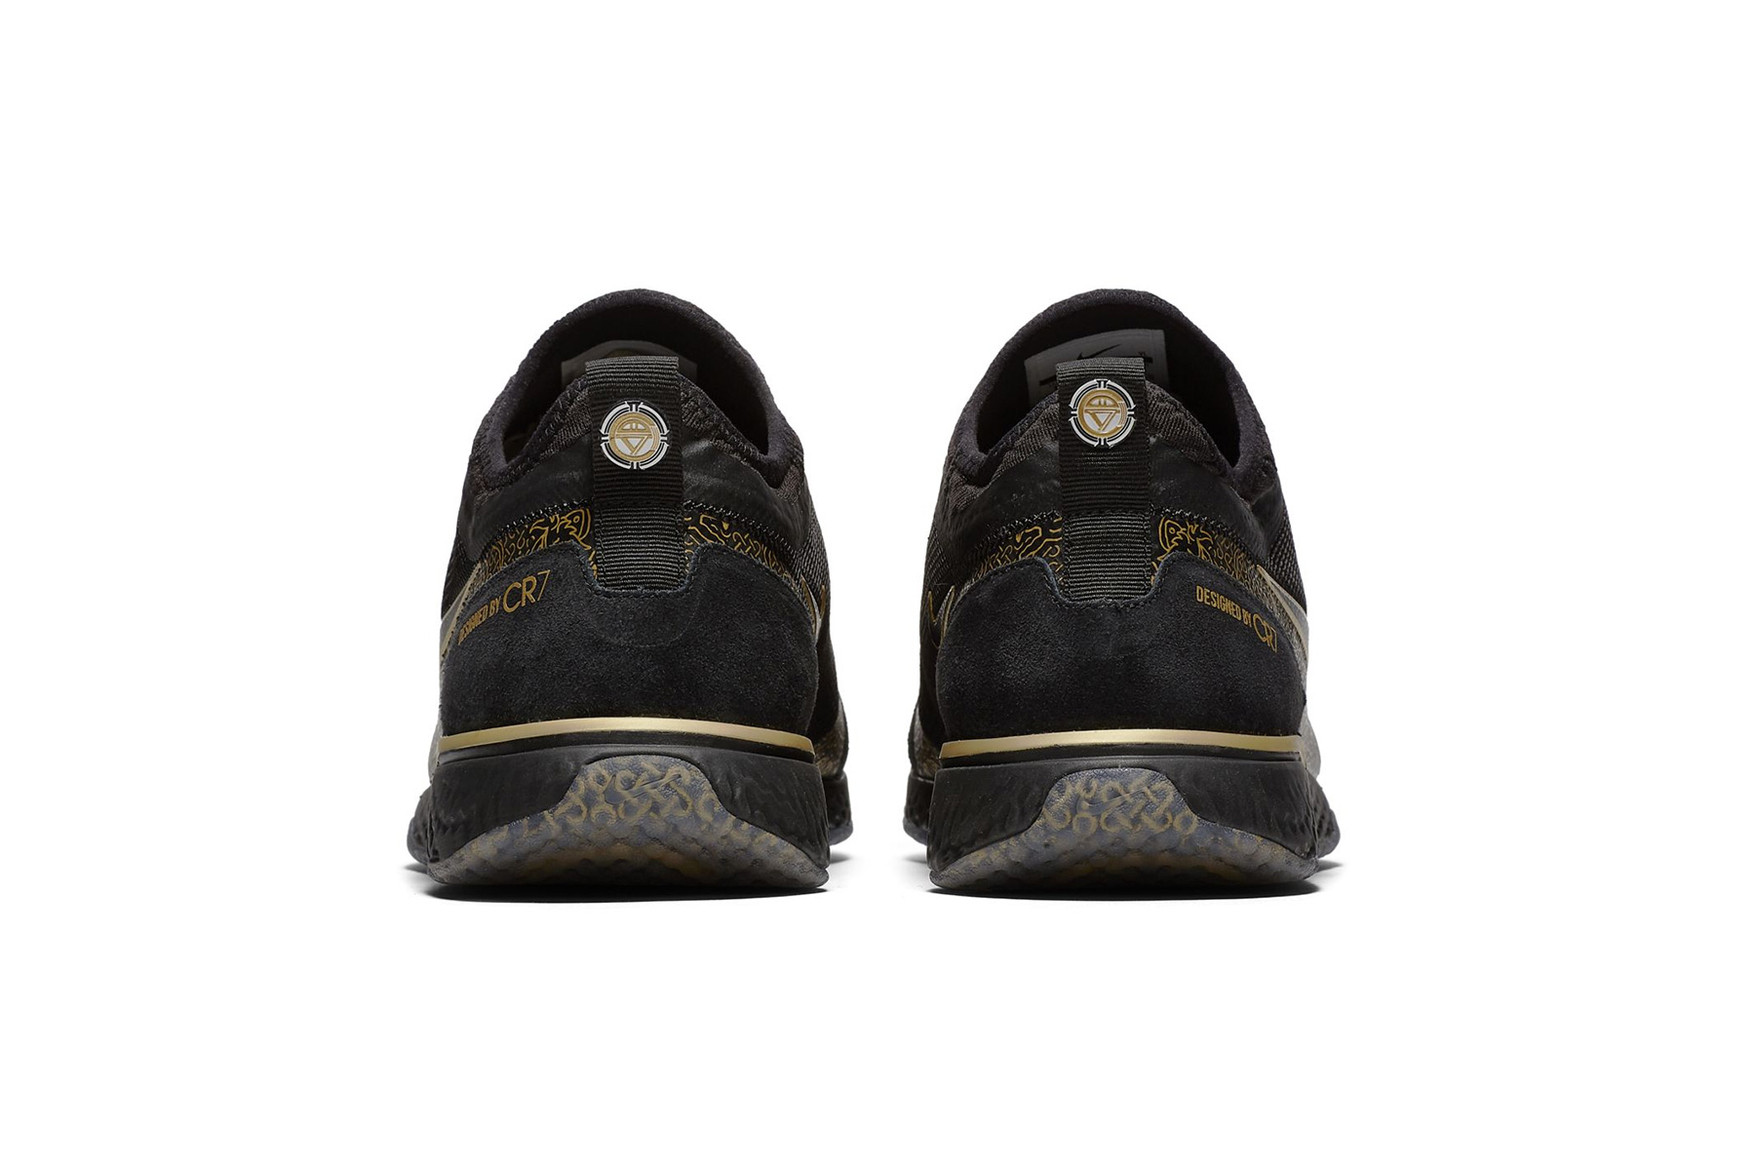 christiano-ronaldo-nike-fc-cr7-black-metallic-gold-04